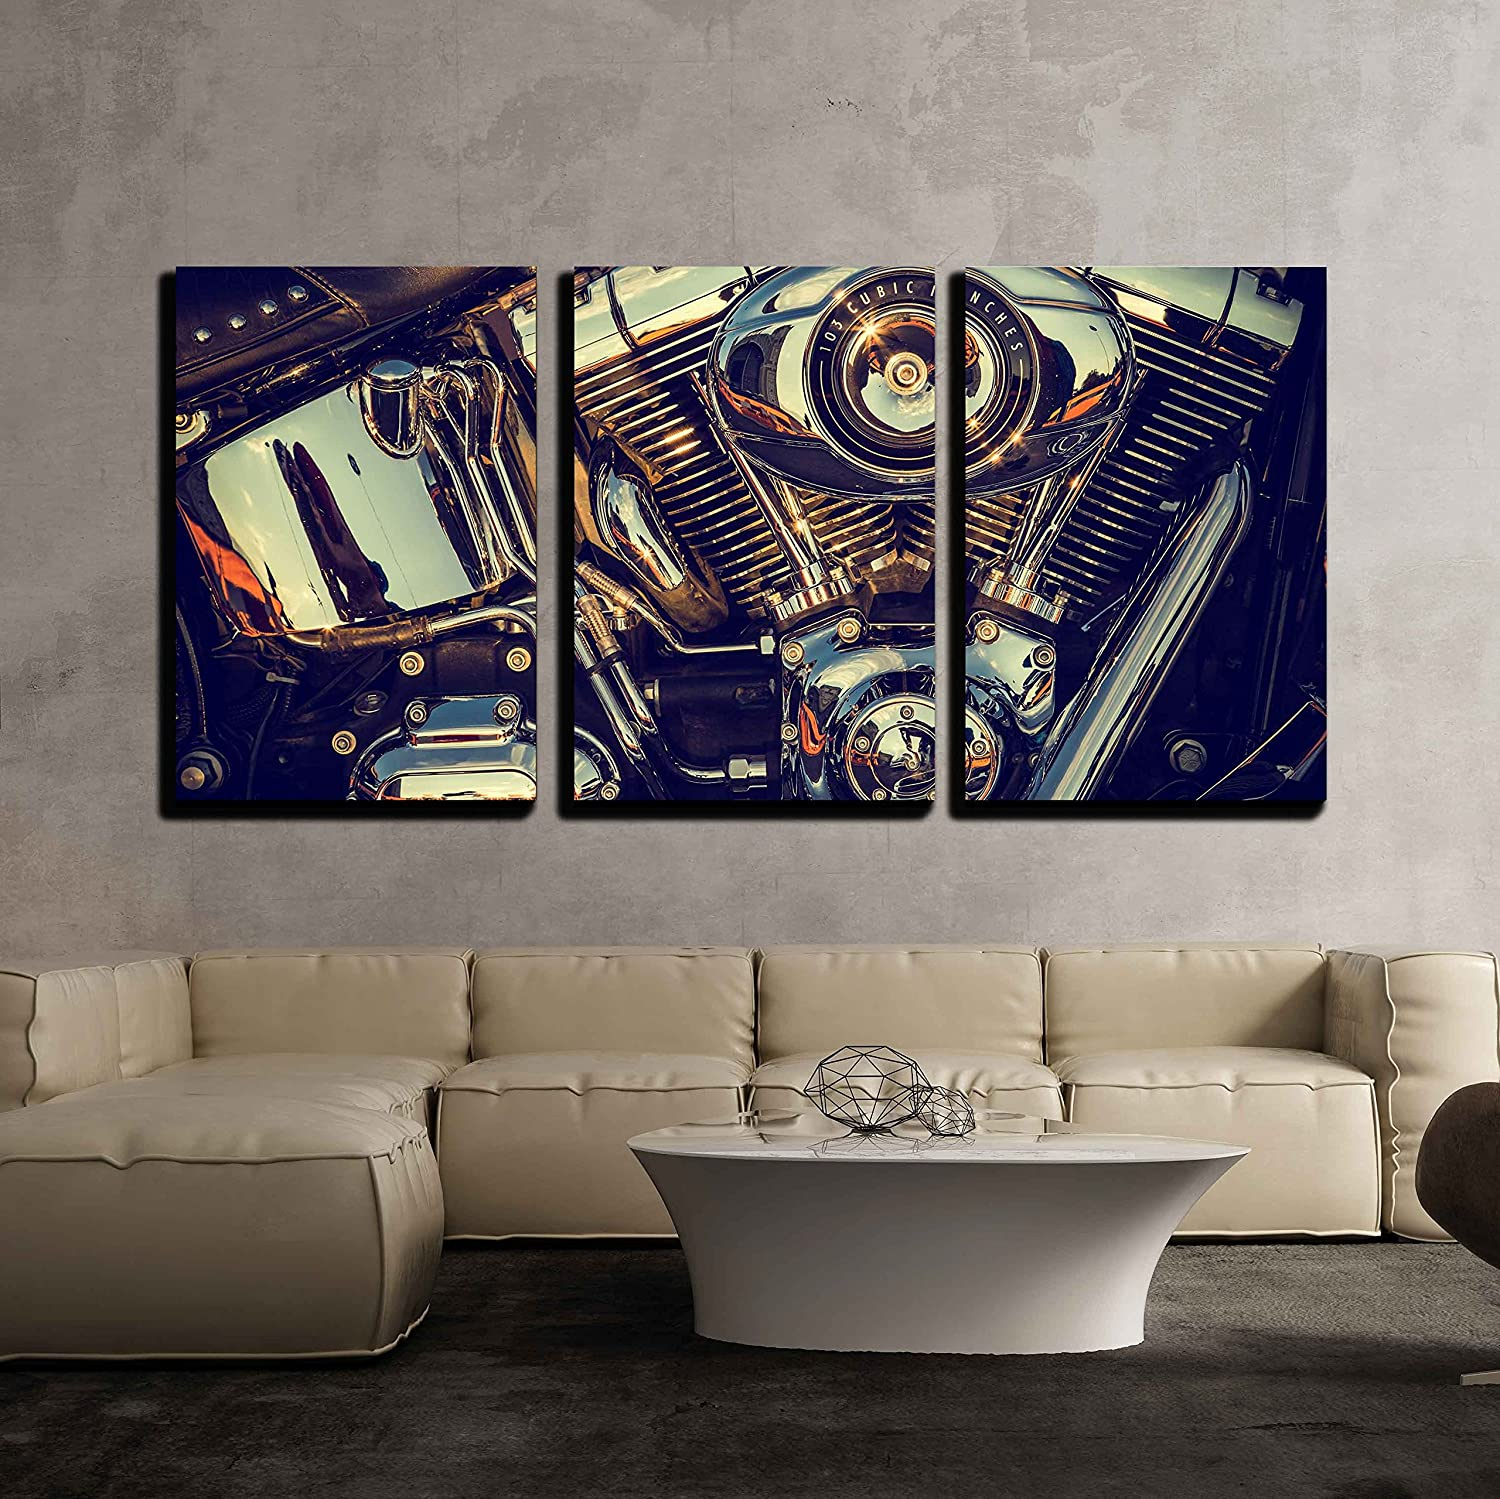 """wall26 - 3 Piece Canvas Wall Art - Close Up of a High Power Motorcycle, Classic Vintage Style. - Modern Home Decor Stretched and Framed Ready to Hang - 16""""x24""""x3 Panels"""